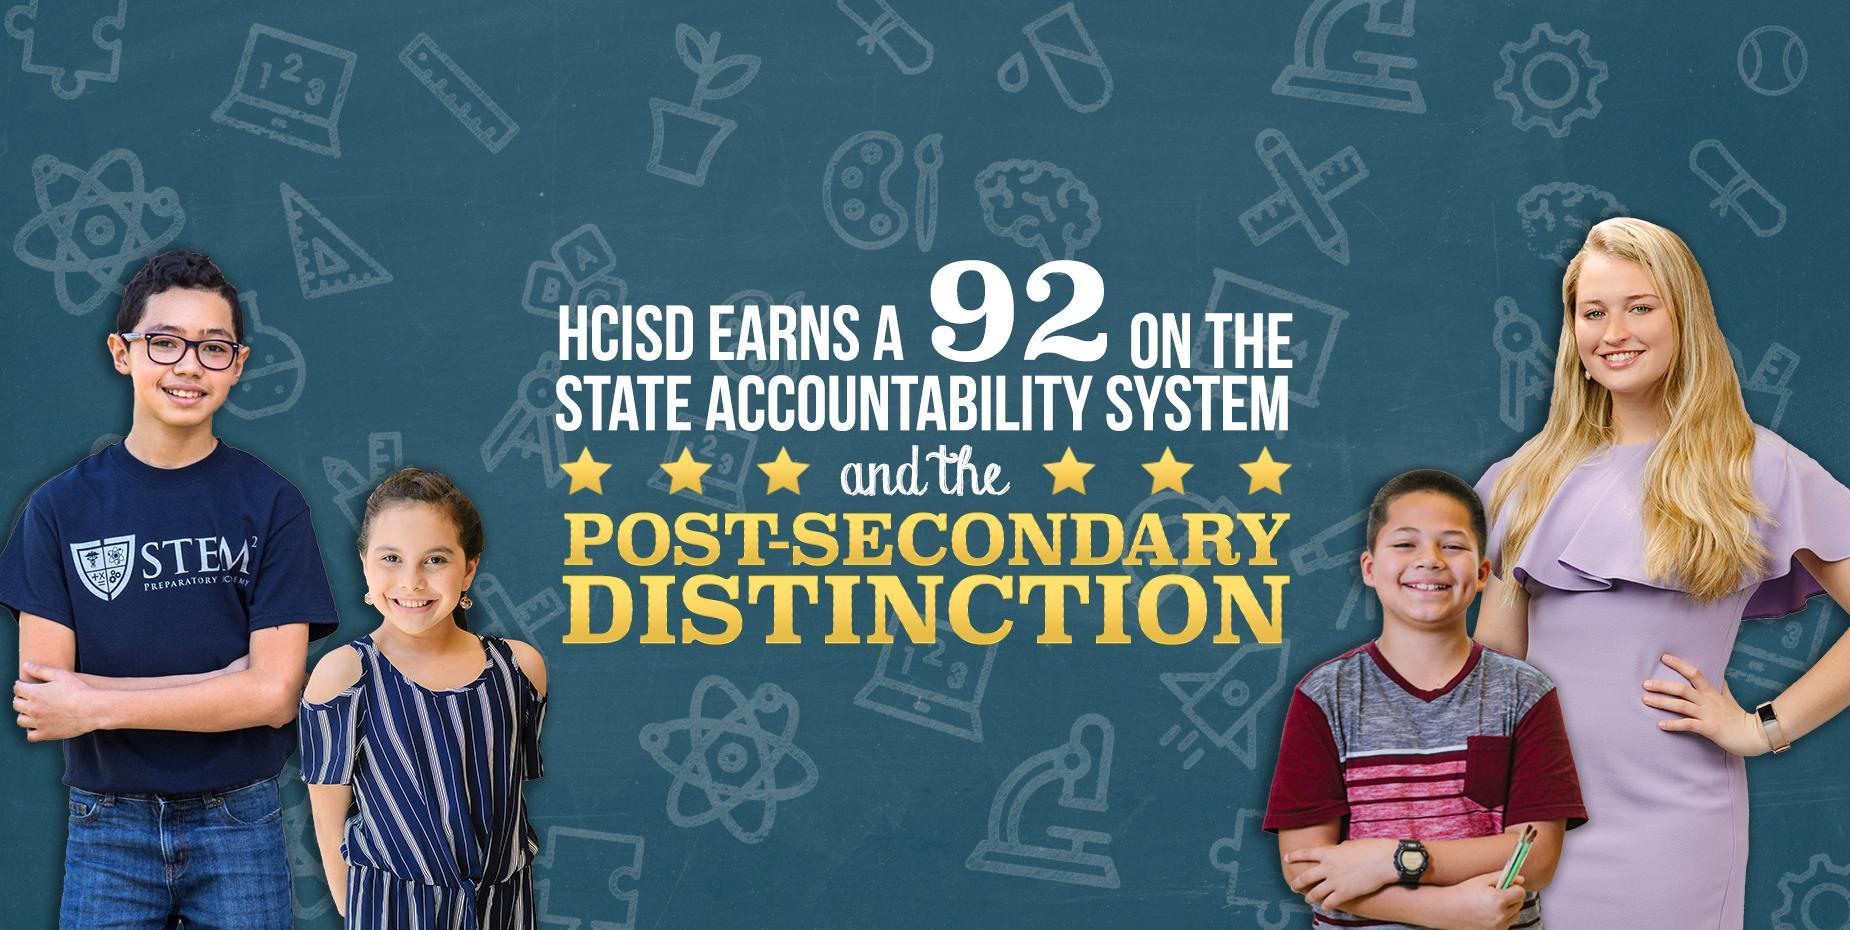 HCISD earns post-secondary distinction and 92